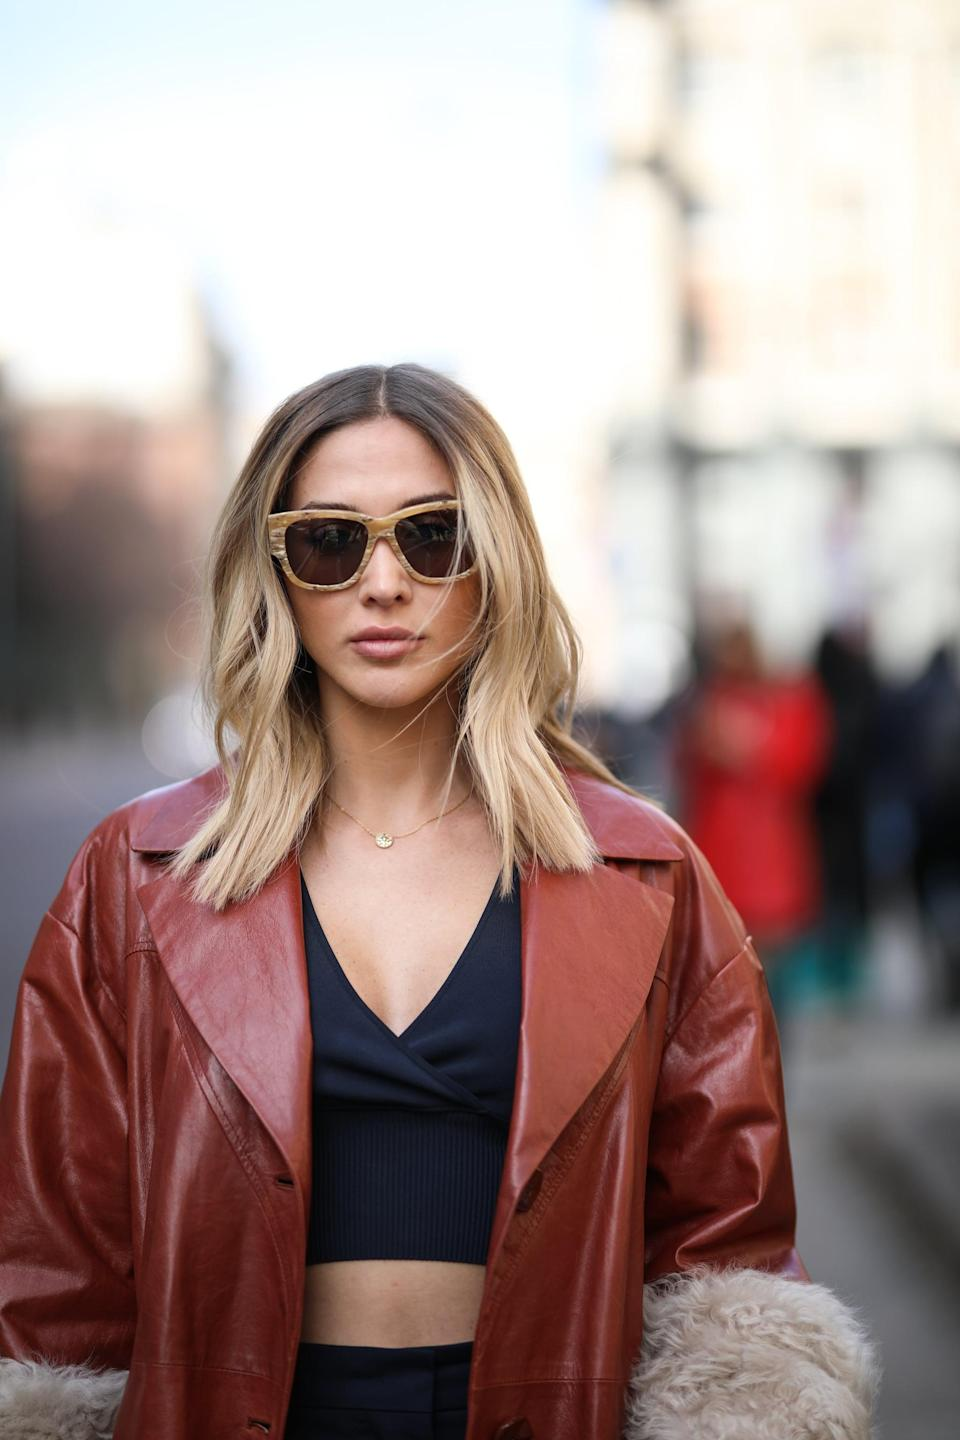 """<p>The clavicut is an appellation for where the hair hits and is the best of both worlds: short enough to pass as a long bob but long enough to wear in a ponytail. """"The <a href=""""https://www.popsugar.com/beauty/clavicut-haircut-ideas-47274352"""" class=""""link rapid-noclick-resp"""" rel=""""nofollow noopener"""" target=""""_blank"""" data-ylk=""""slk:clavicut is a collarbone-grazing style"""">clavicut is a collarbone-grazing style</a> that [looks good on] all hair types and face shapes,"""" said Tricomi. """"This style features back strands resting on the nape of your neck with the face-framing strands dipping an extra inch or two until they kiss your collarbone - an edgy yet sophisticated hairstyle, all at the same time.""""</p>"""